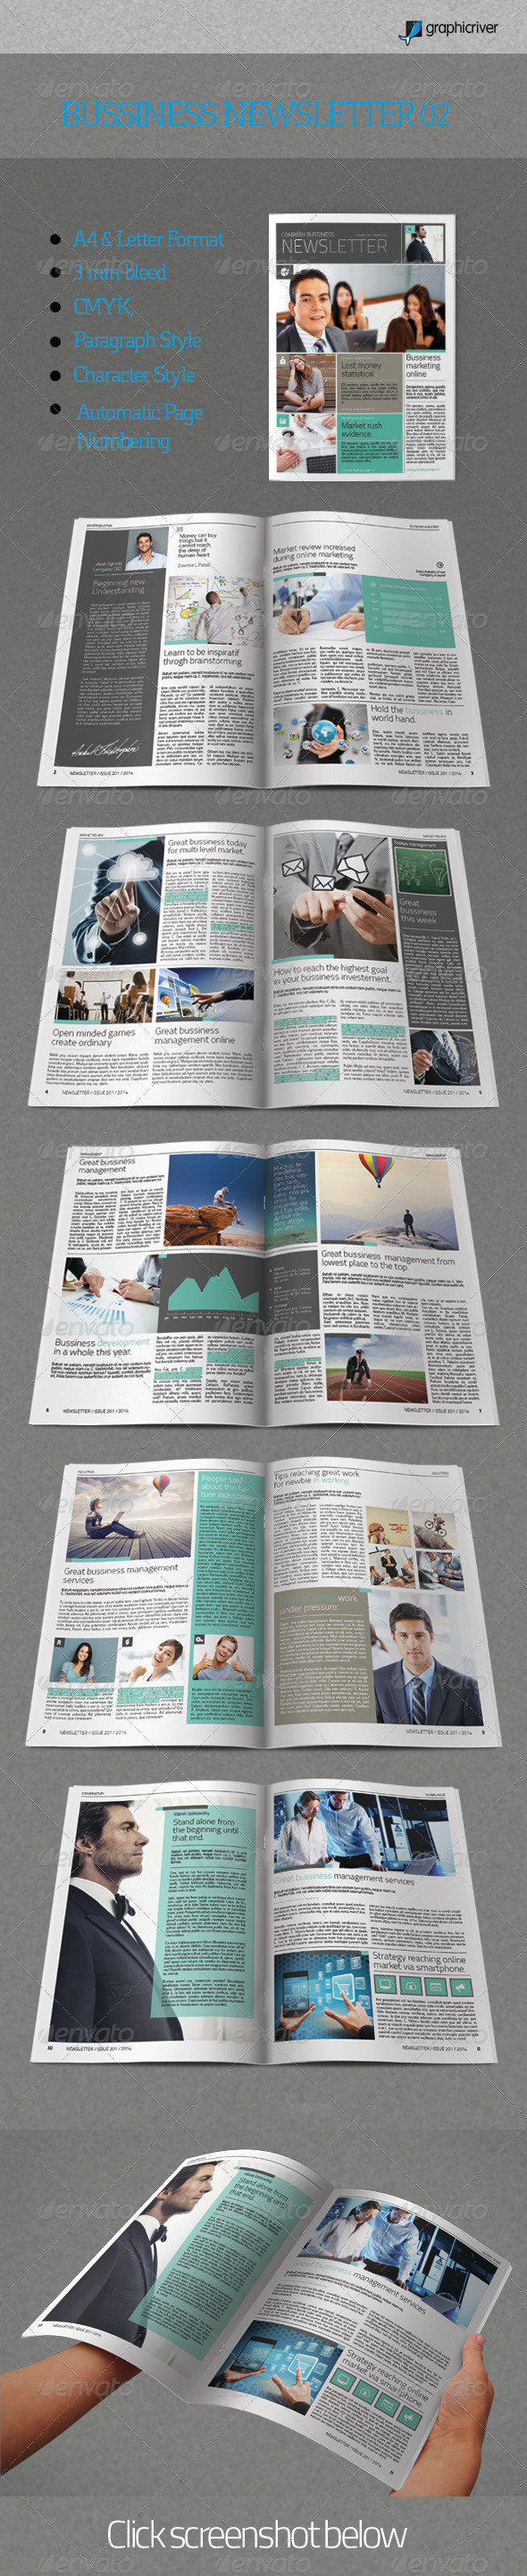 GraphicRiver Bussiness Newsletter 02 7905536